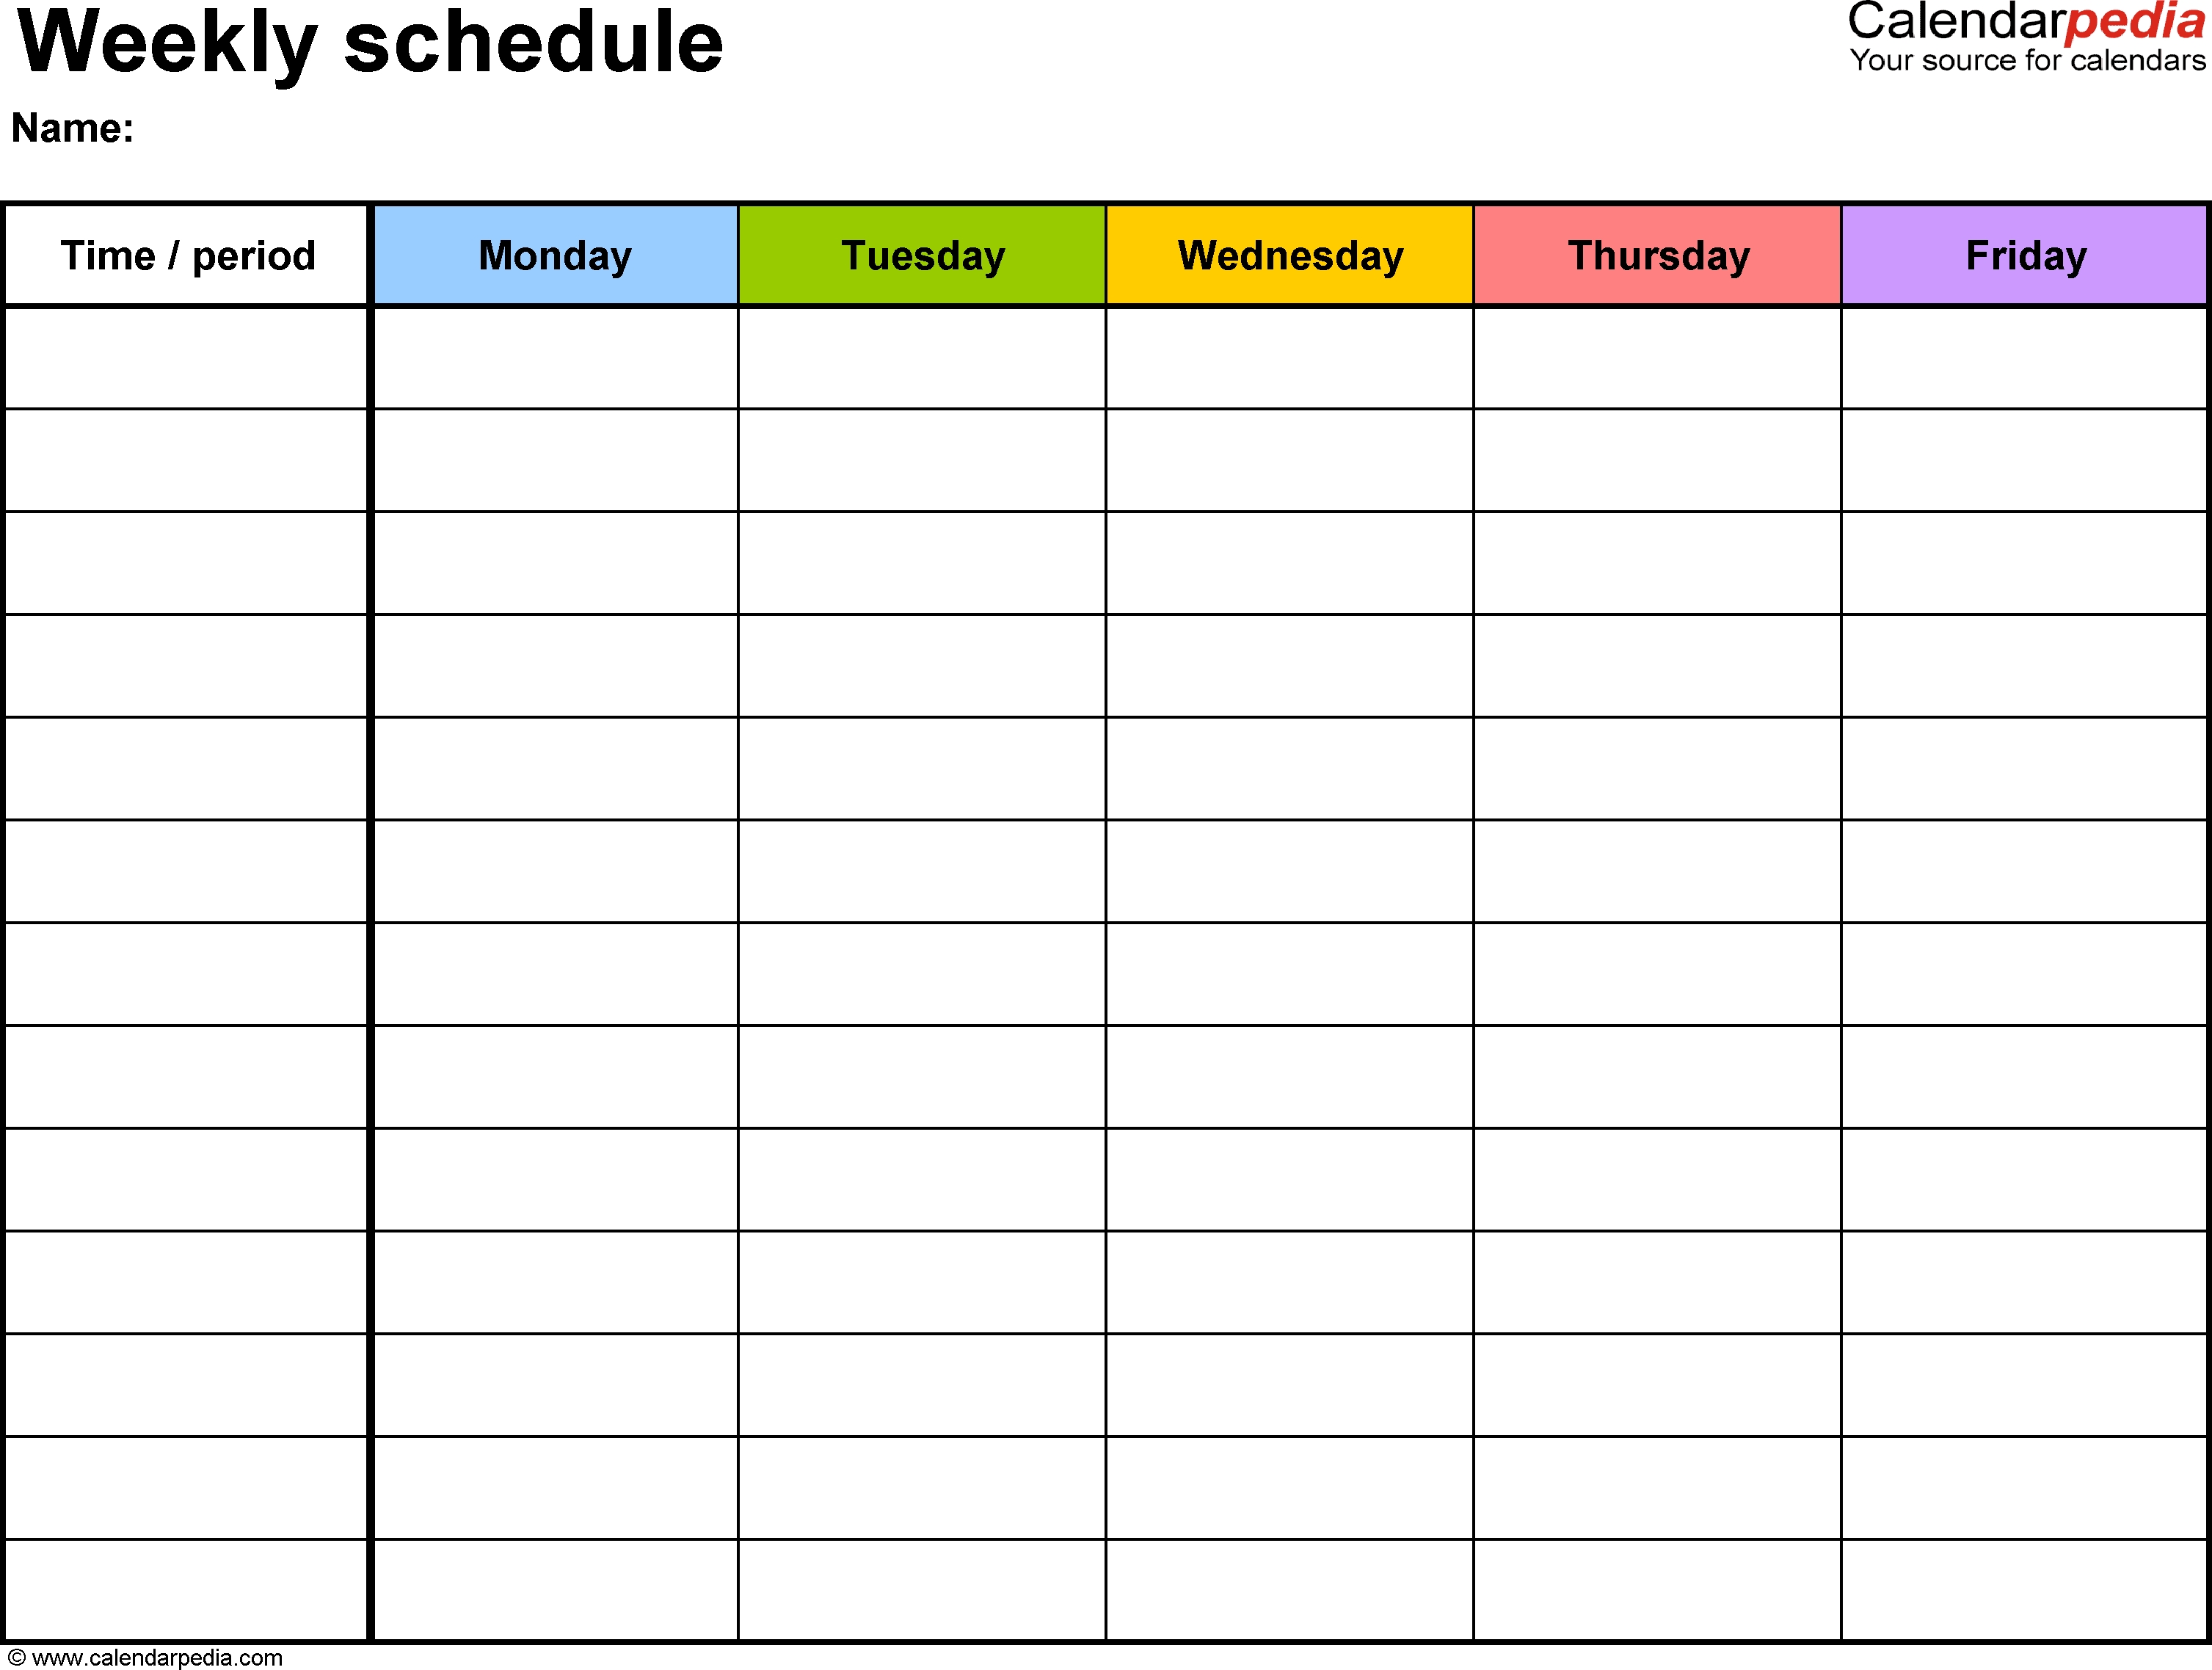 Free Weekly Schedule Templates For Word - 18 Templates pertaining to Blank Calendar Template Monday Friday